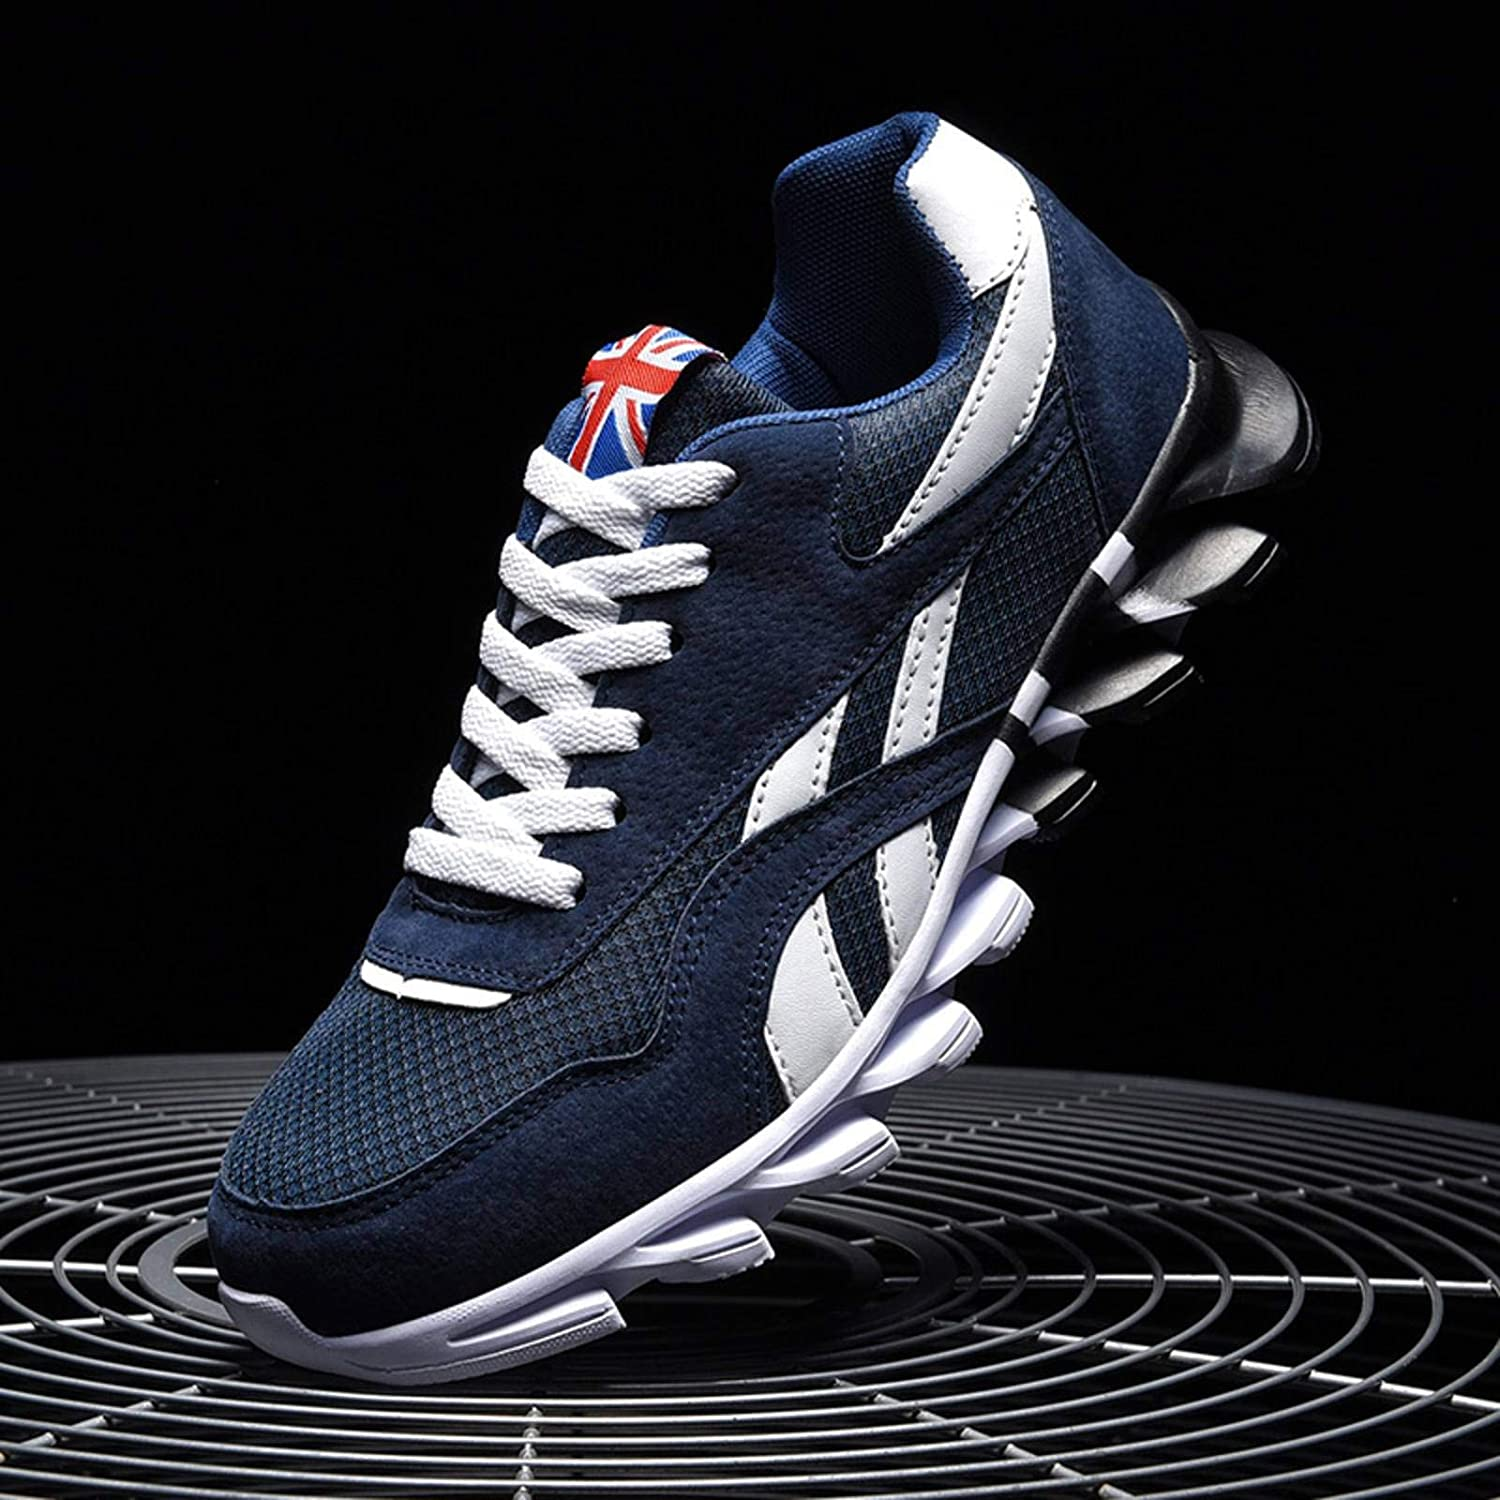 H U sale C D M L Men Breathable Outdoor Light Sh Shoes Sports Limited Special Price Running